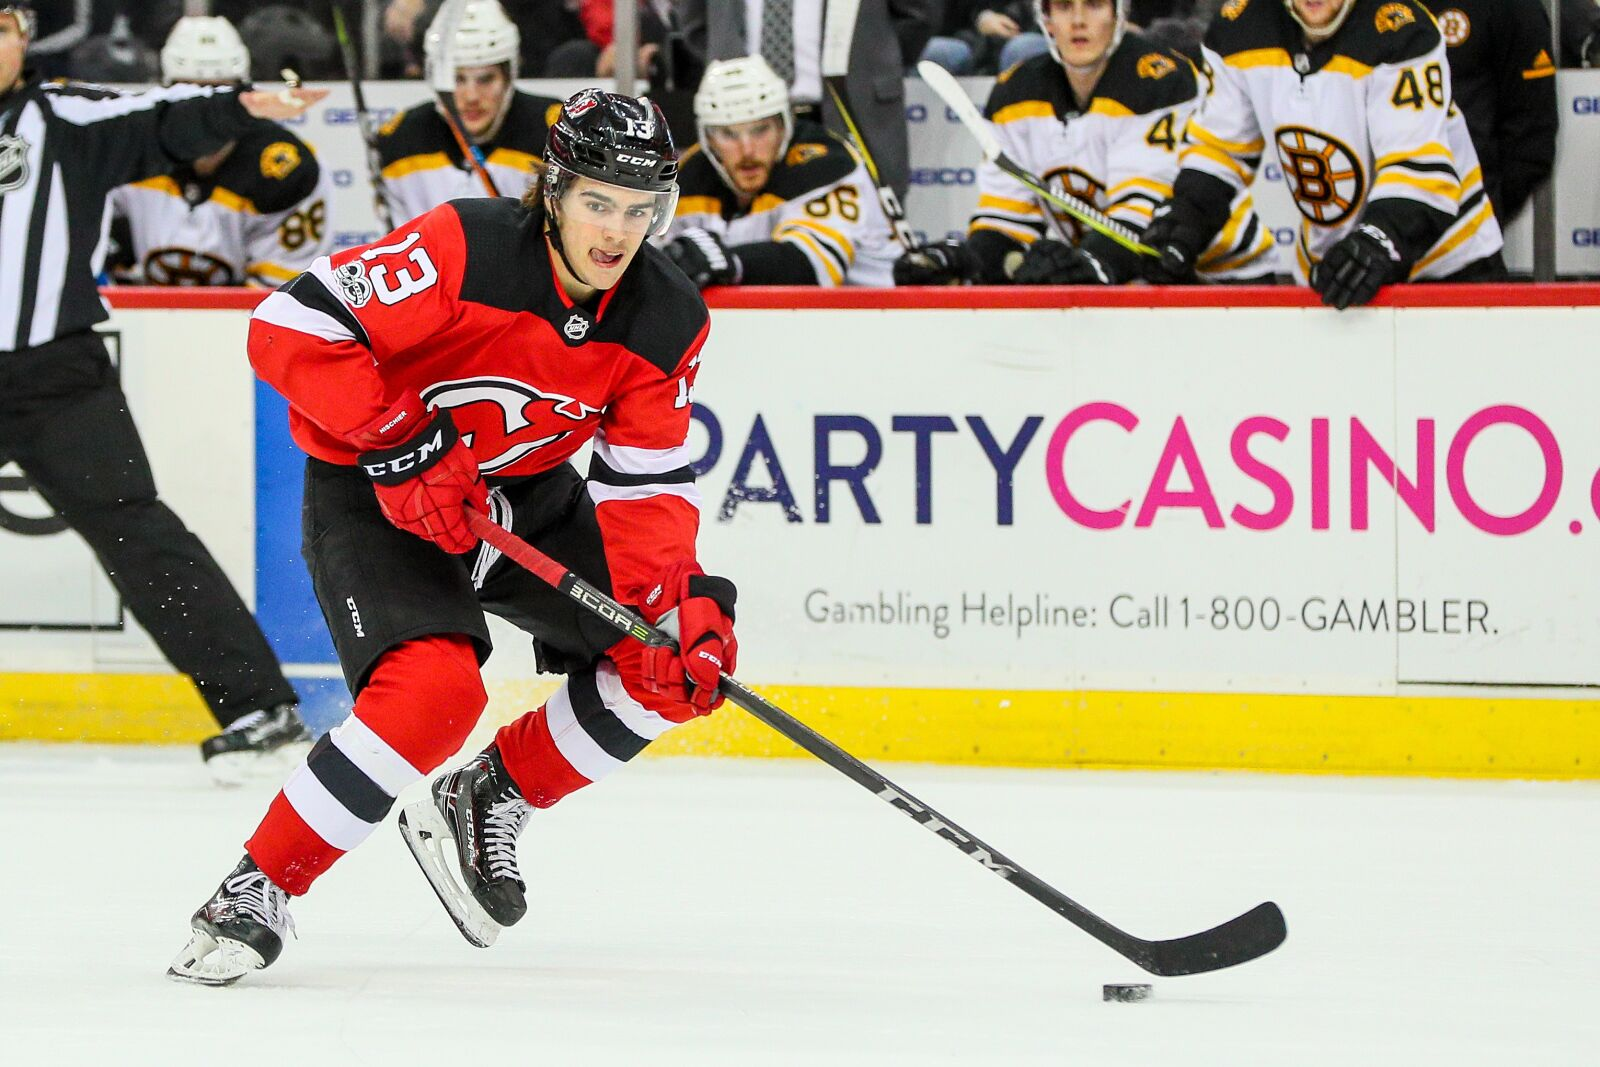 New Jersey Devils: Preseason Beginning With Two Games